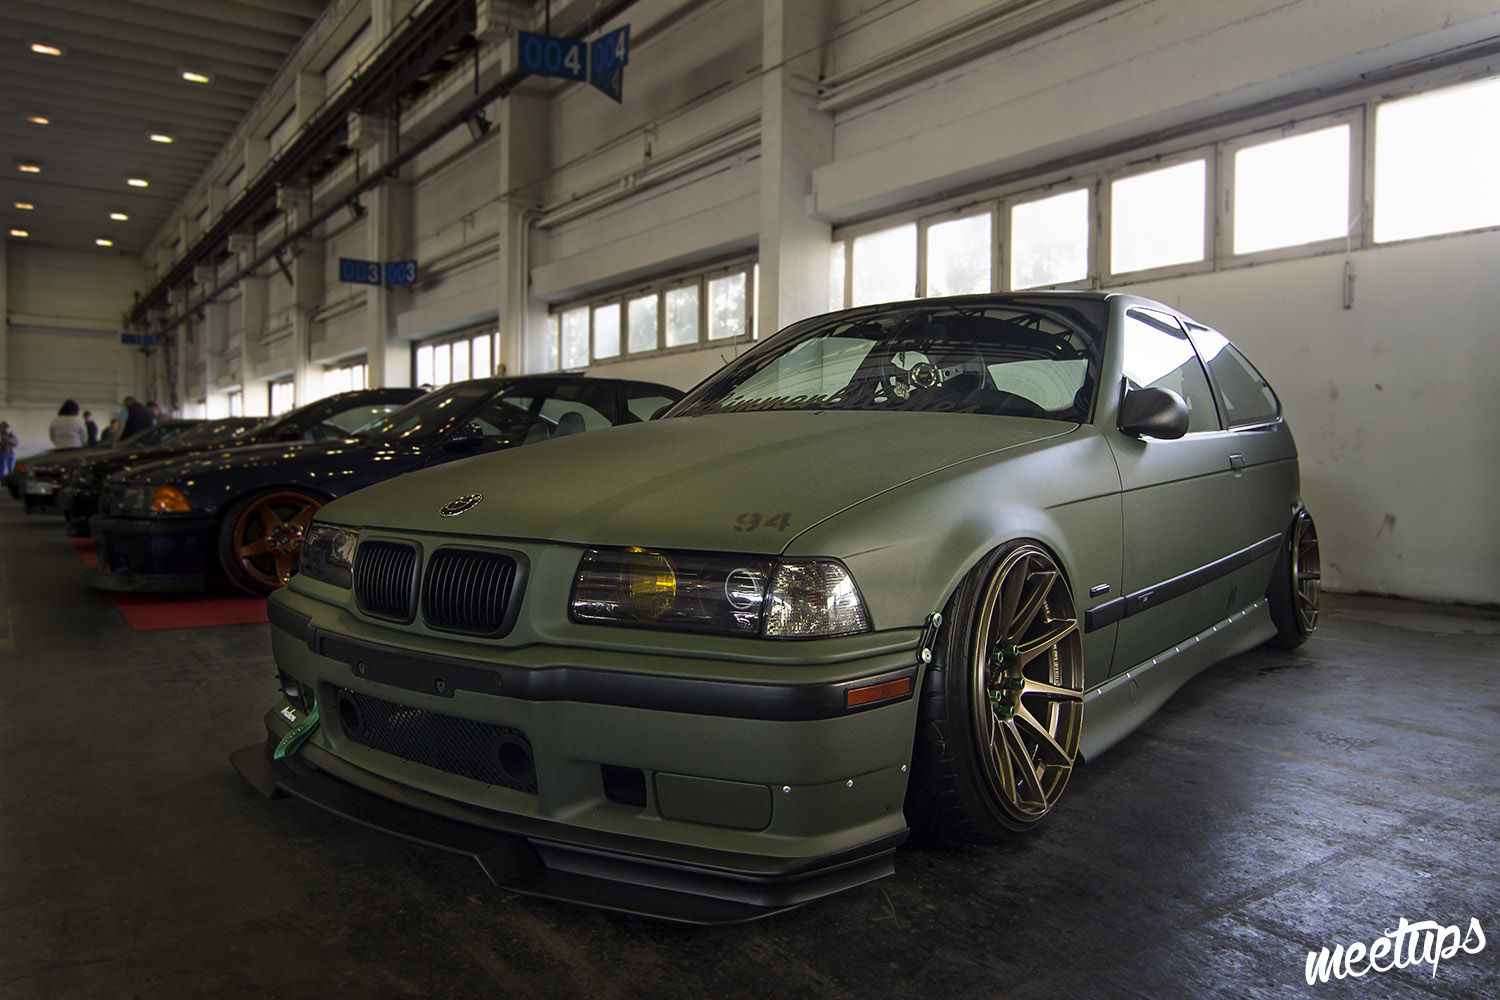 pretty sweet bmw e36 compact stancenation form. Black Bedroom Furniture Sets. Home Design Ideas